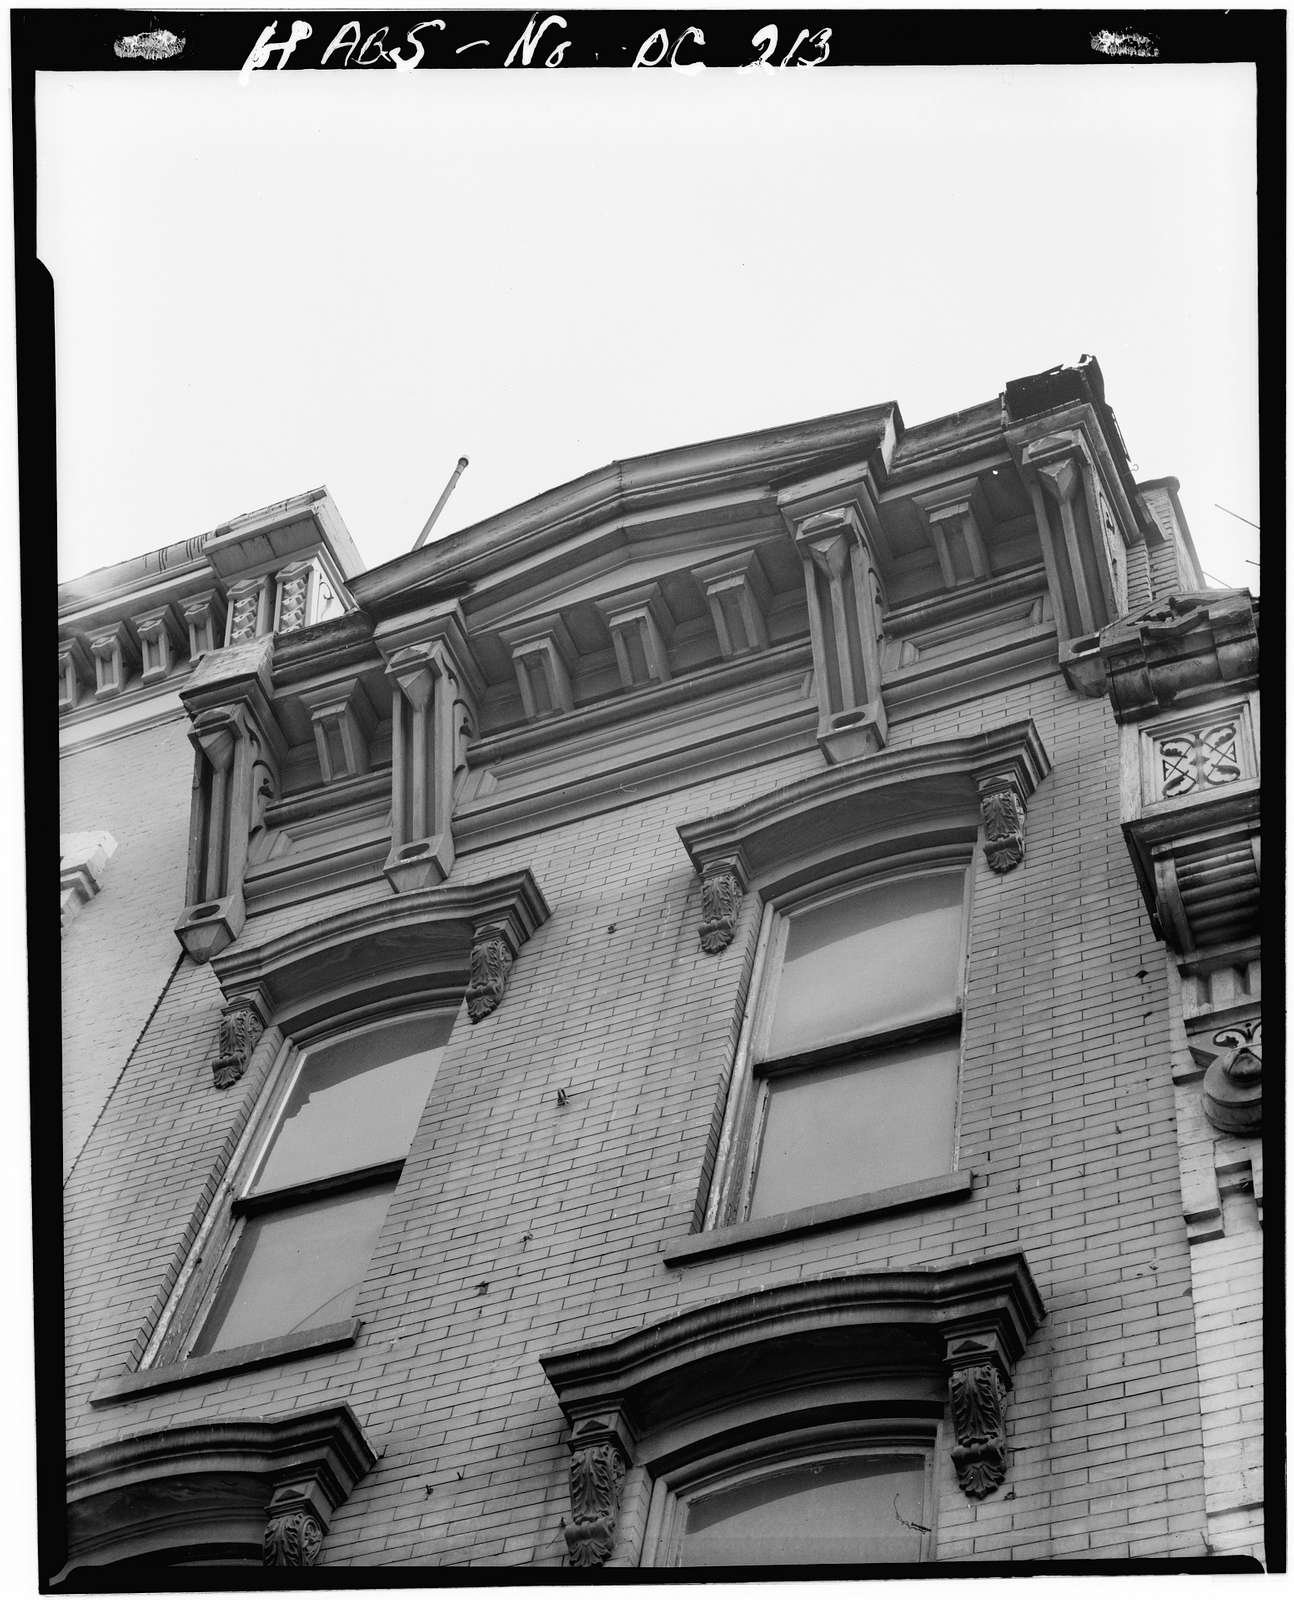 812 F Street Northwest (Commercial Building), (previously recorded as 814 F Street, Northwest), Washington, District of Columbia, DC